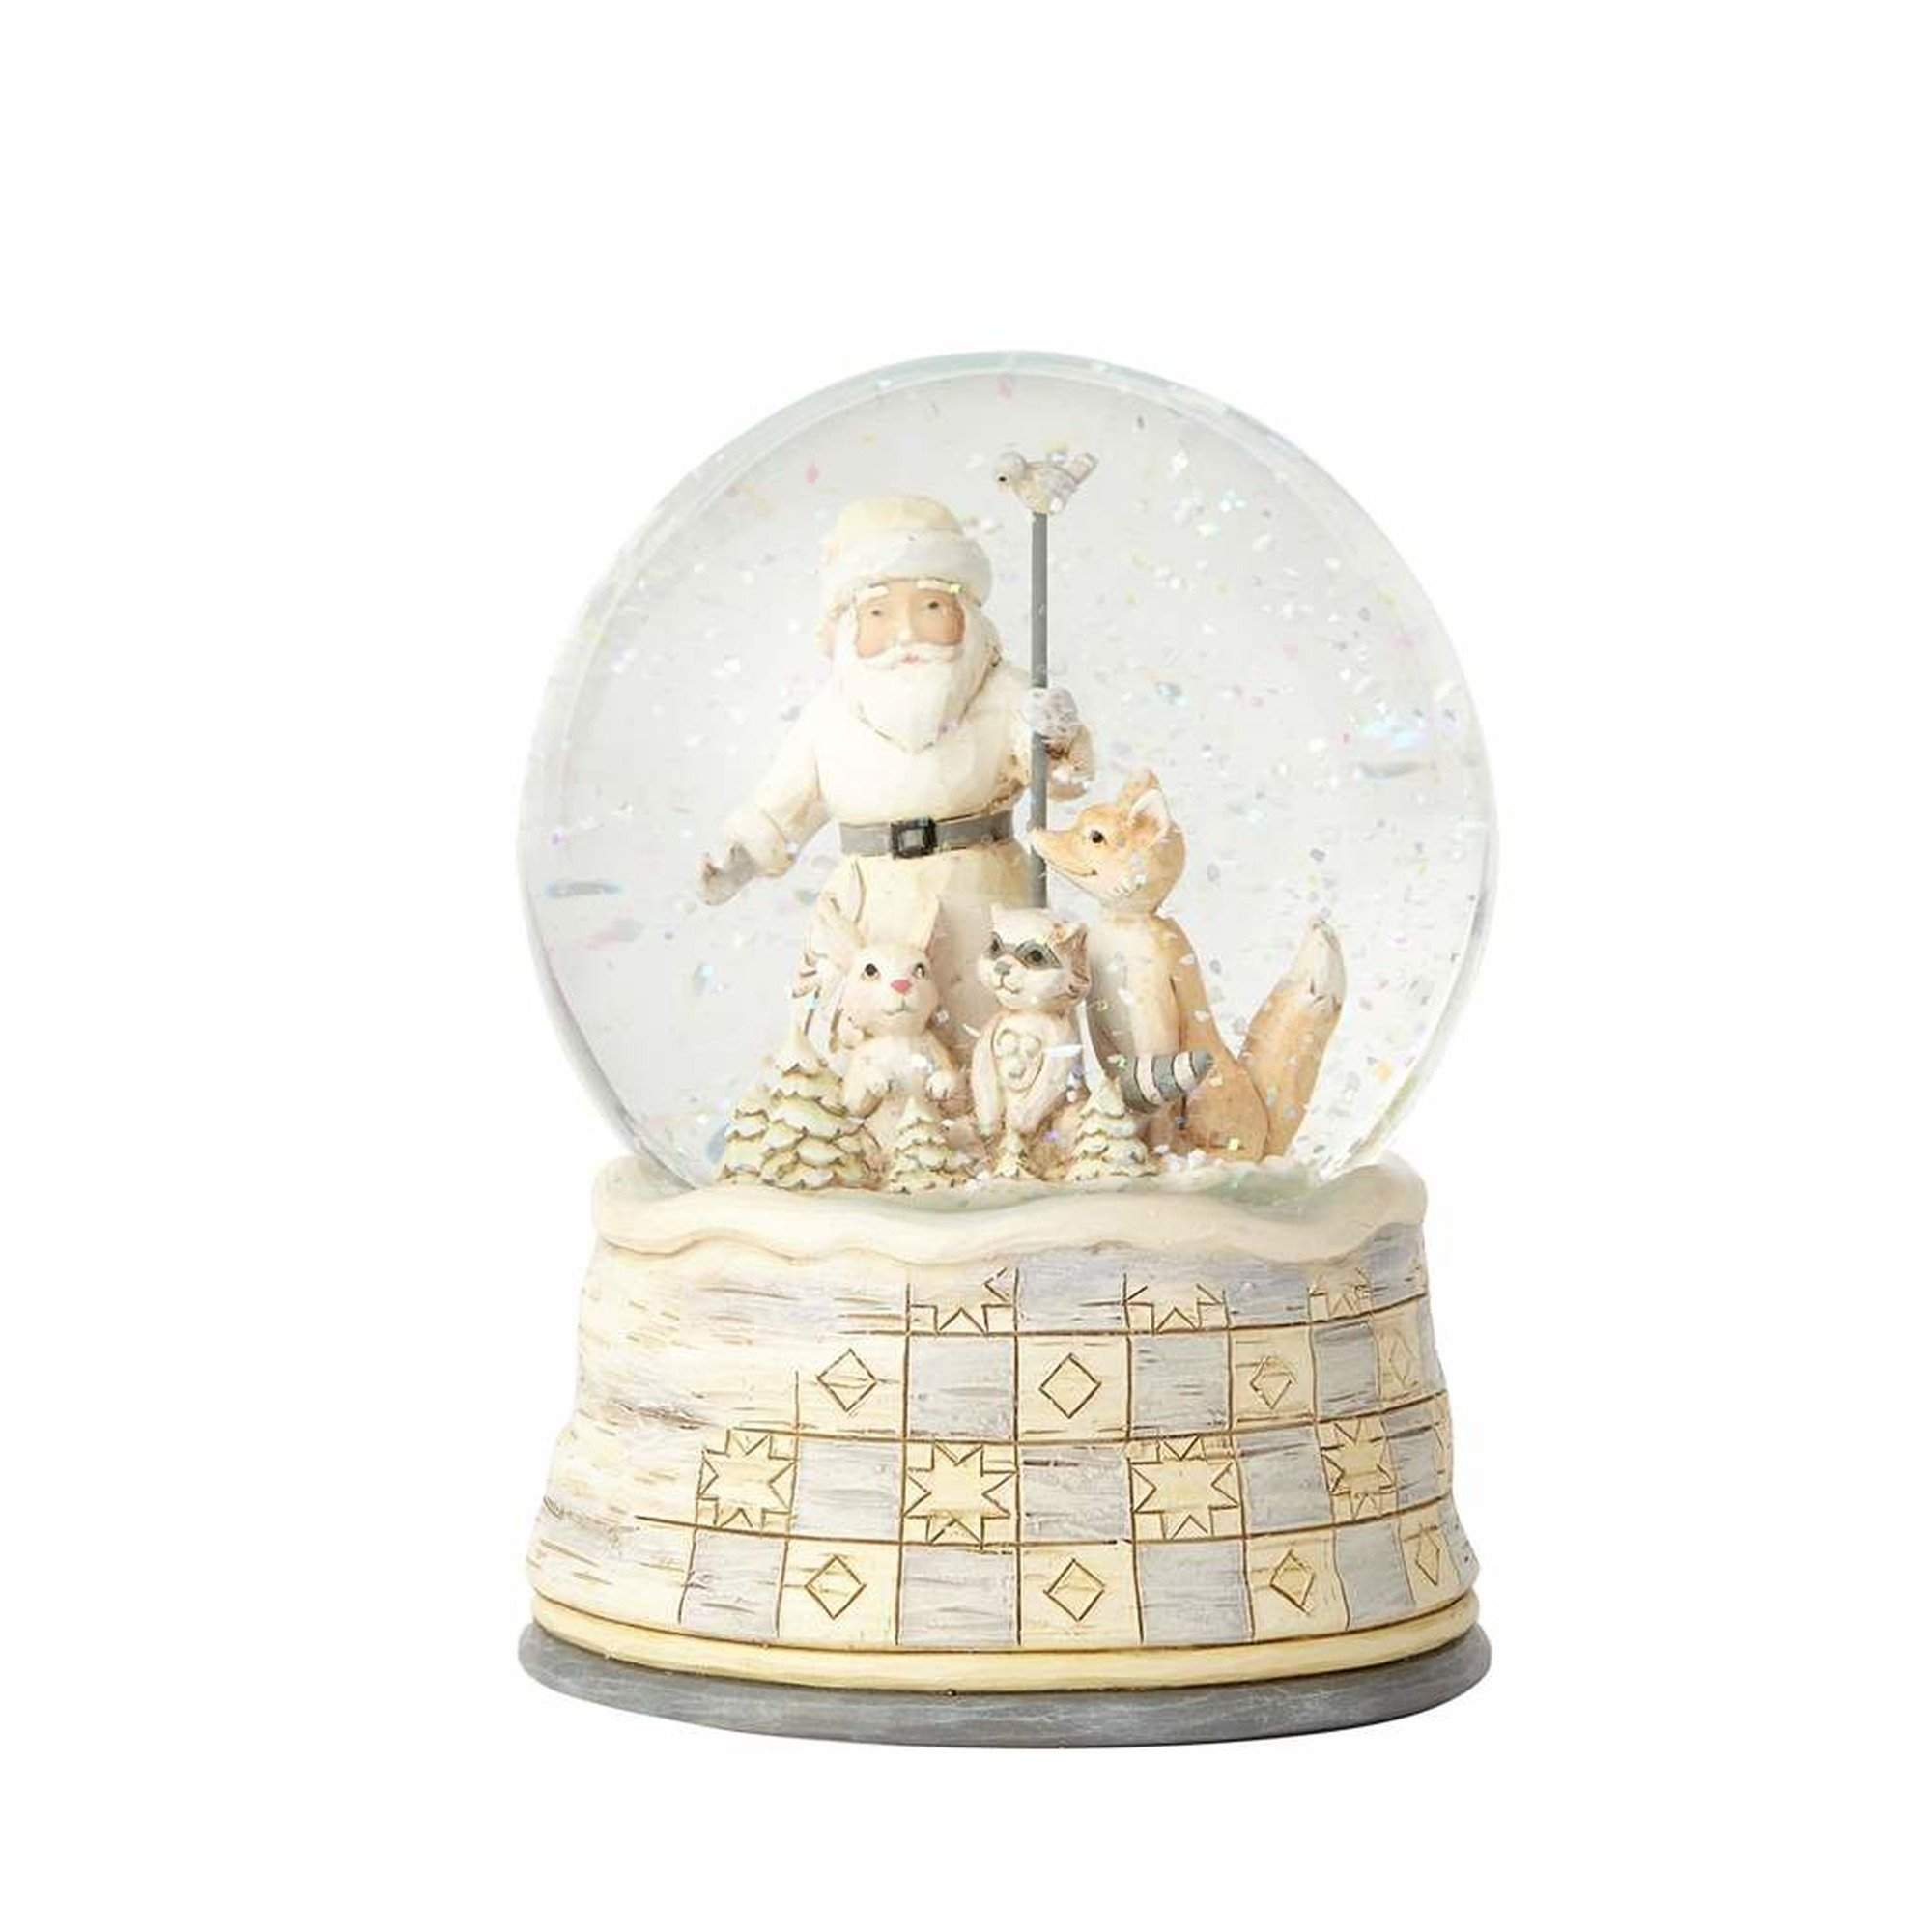 Enesco Jim Shore Heartwood Creek Woodland Season So White, All Is Right Snow Globe, 5.25""